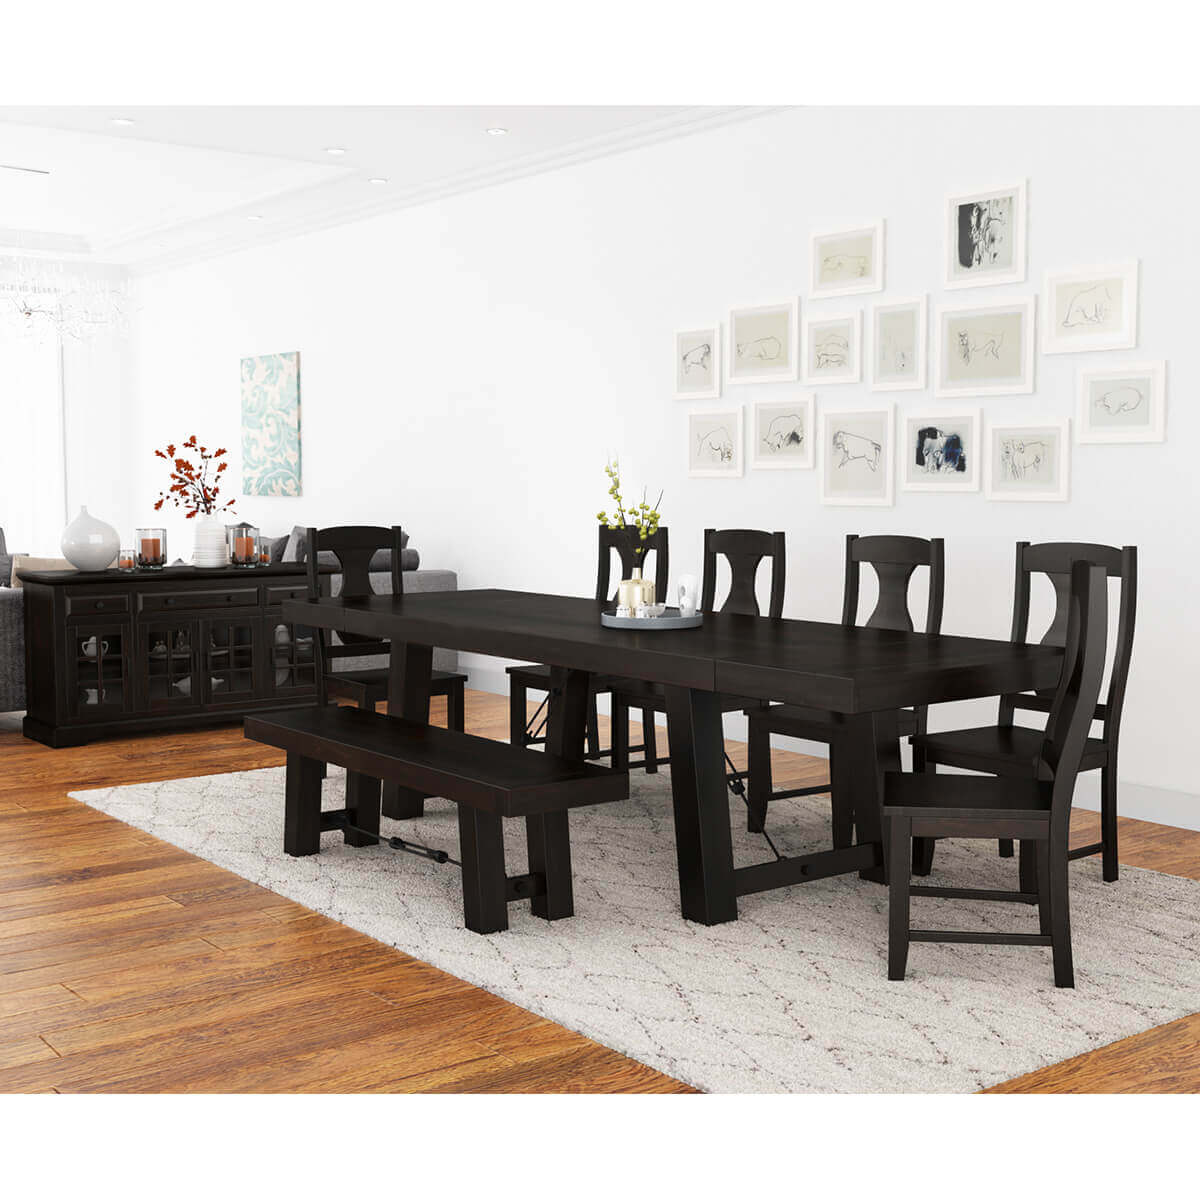 tirana rustic solid wood 9 piece large extensions dining room set. Black Bedroom Furniture Sets. Home Design Ideas